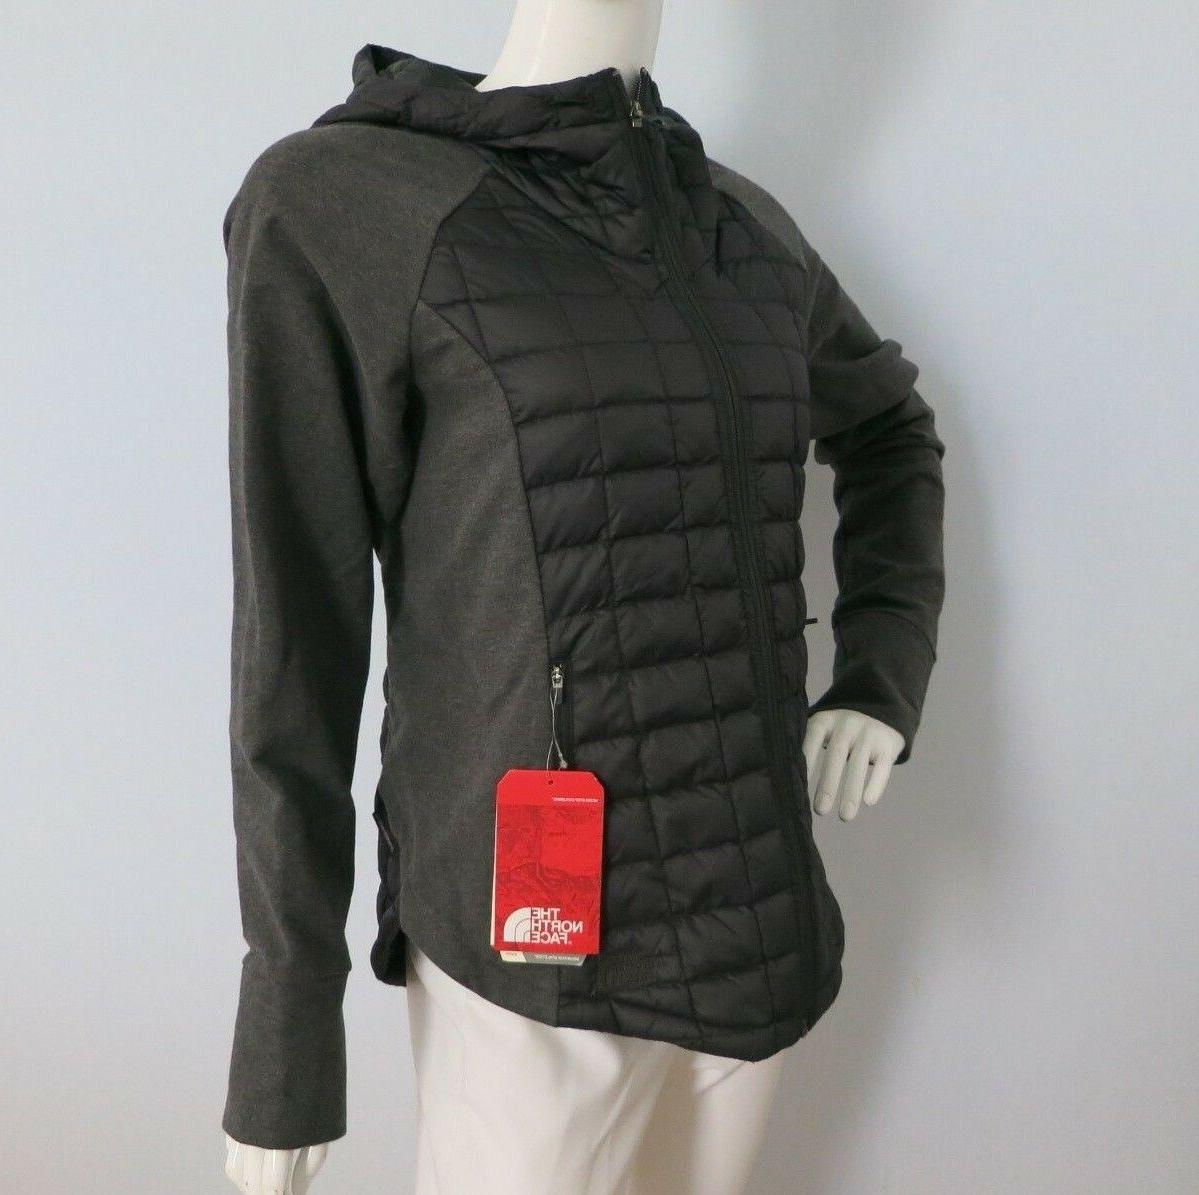 THE FACE Thermoball Jacket Black L MSRP $160